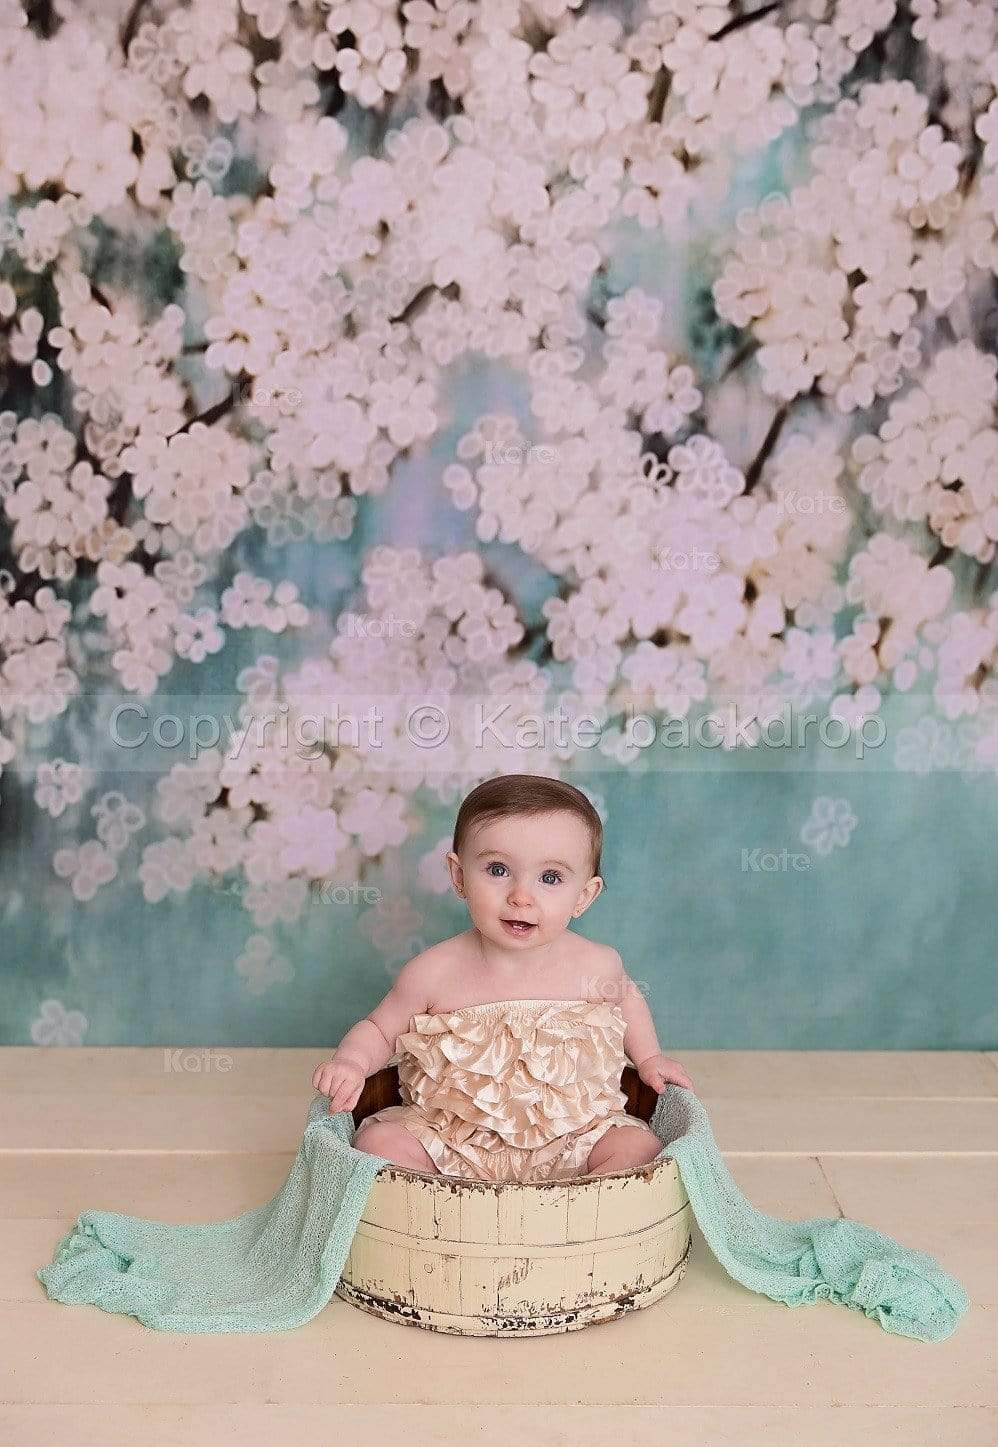 Load image into Gallery viewer, Katebackdrop:Kate Retro Style Green With White Flowers Backdrops for Children